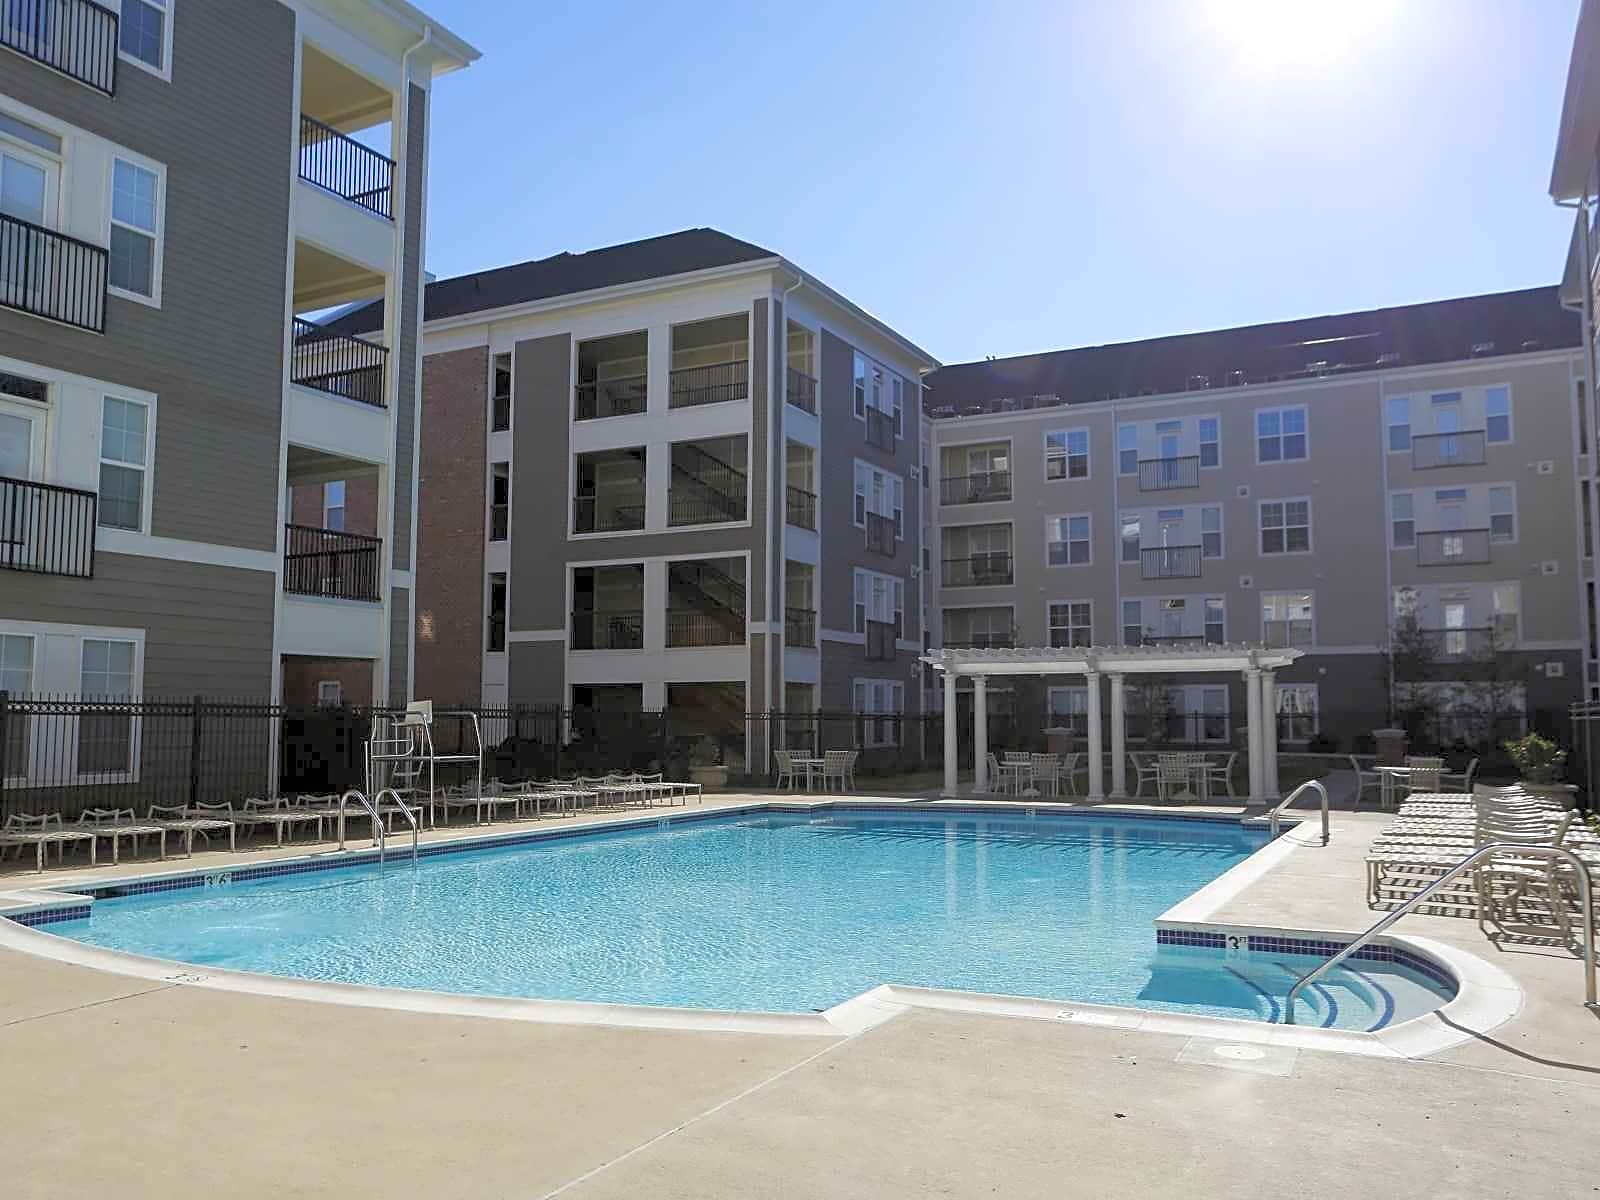 Apartments And Houses For Rent In Annapolis